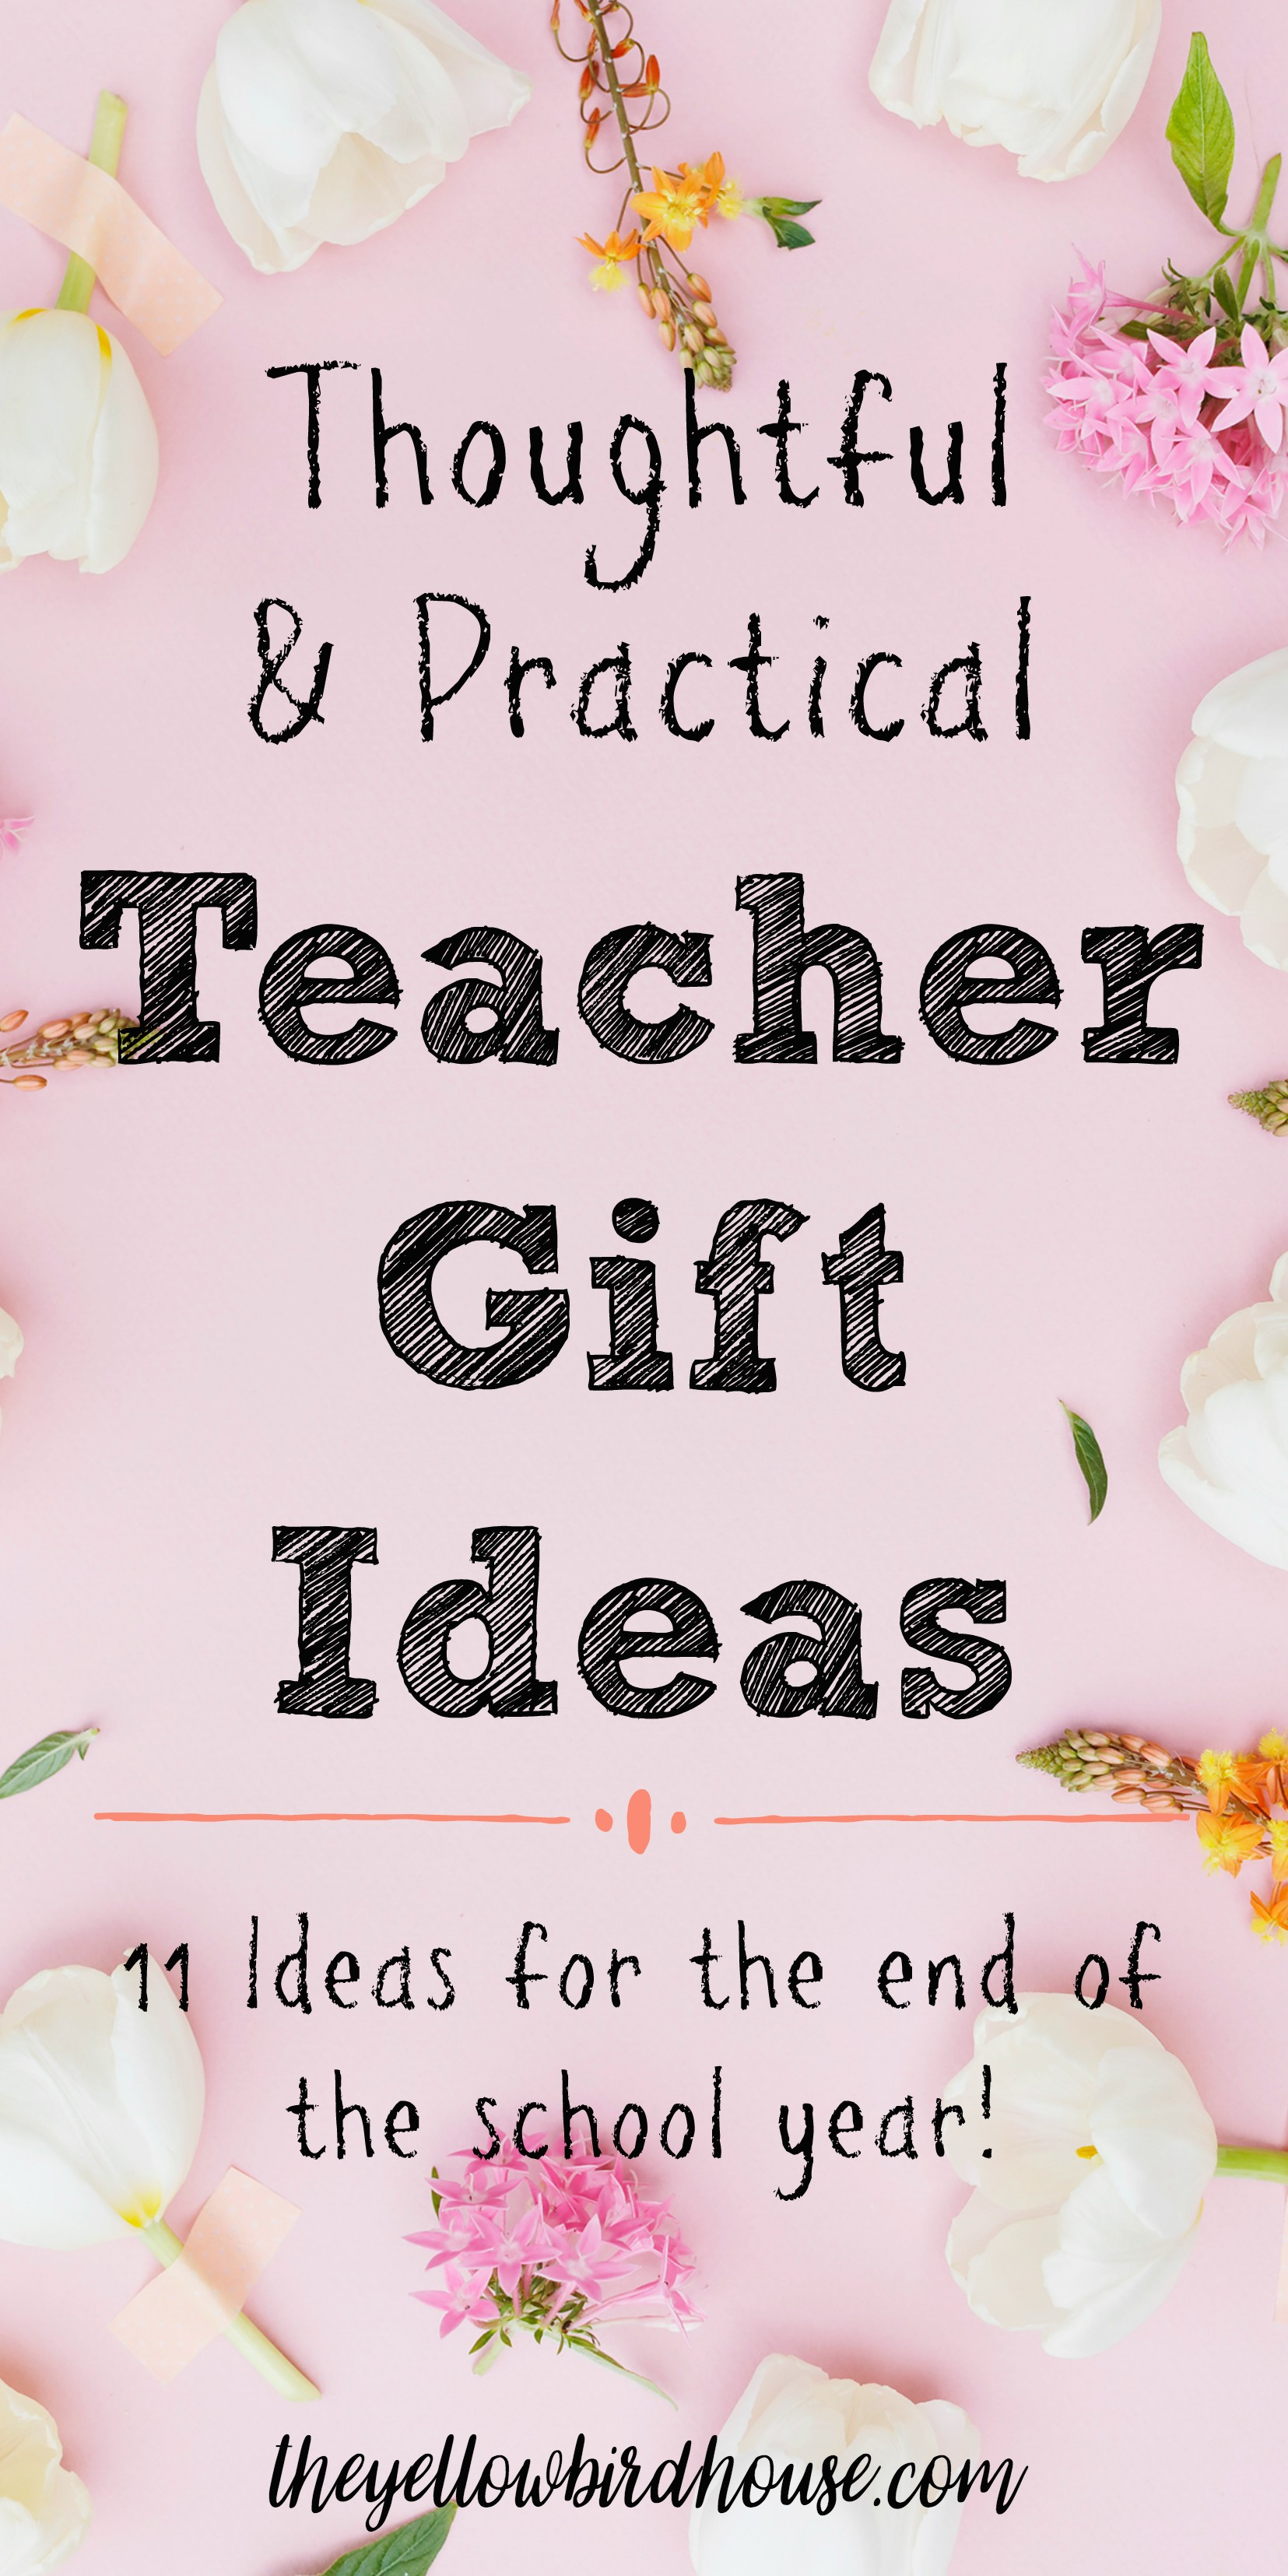 Need some ideas for end of year teacher gift ideas? Here are 11 thoughtful and practical gift ideas to show your appreciation to the teachers who work so hard. Useful gift ideas for teachers.